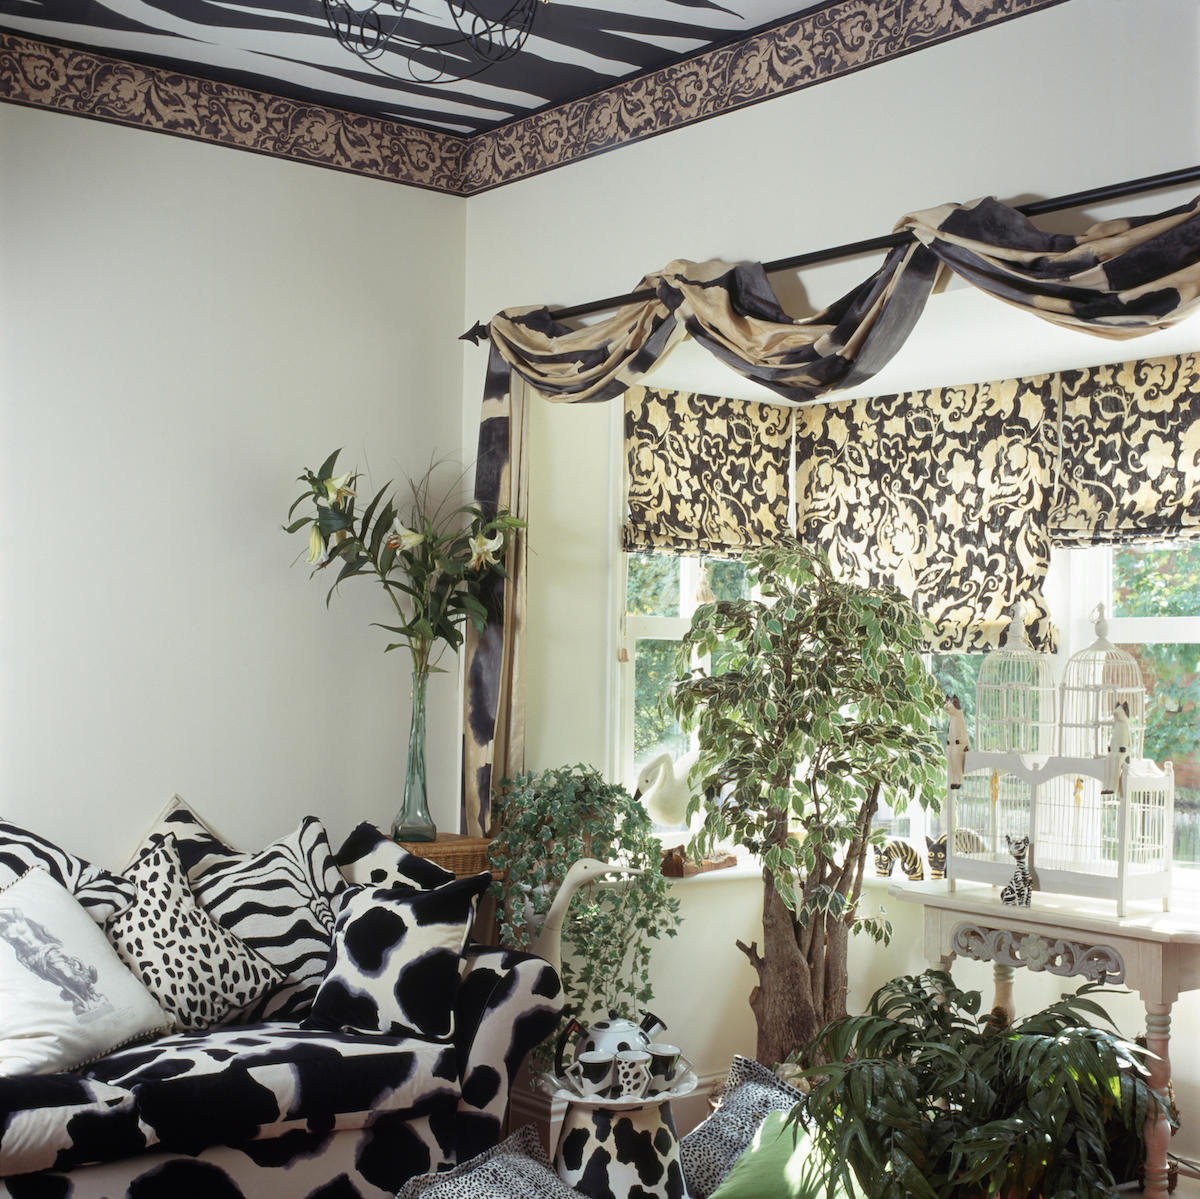 Black+white animal print sofa and cushions in nineties living room with draped fabric on pole above window